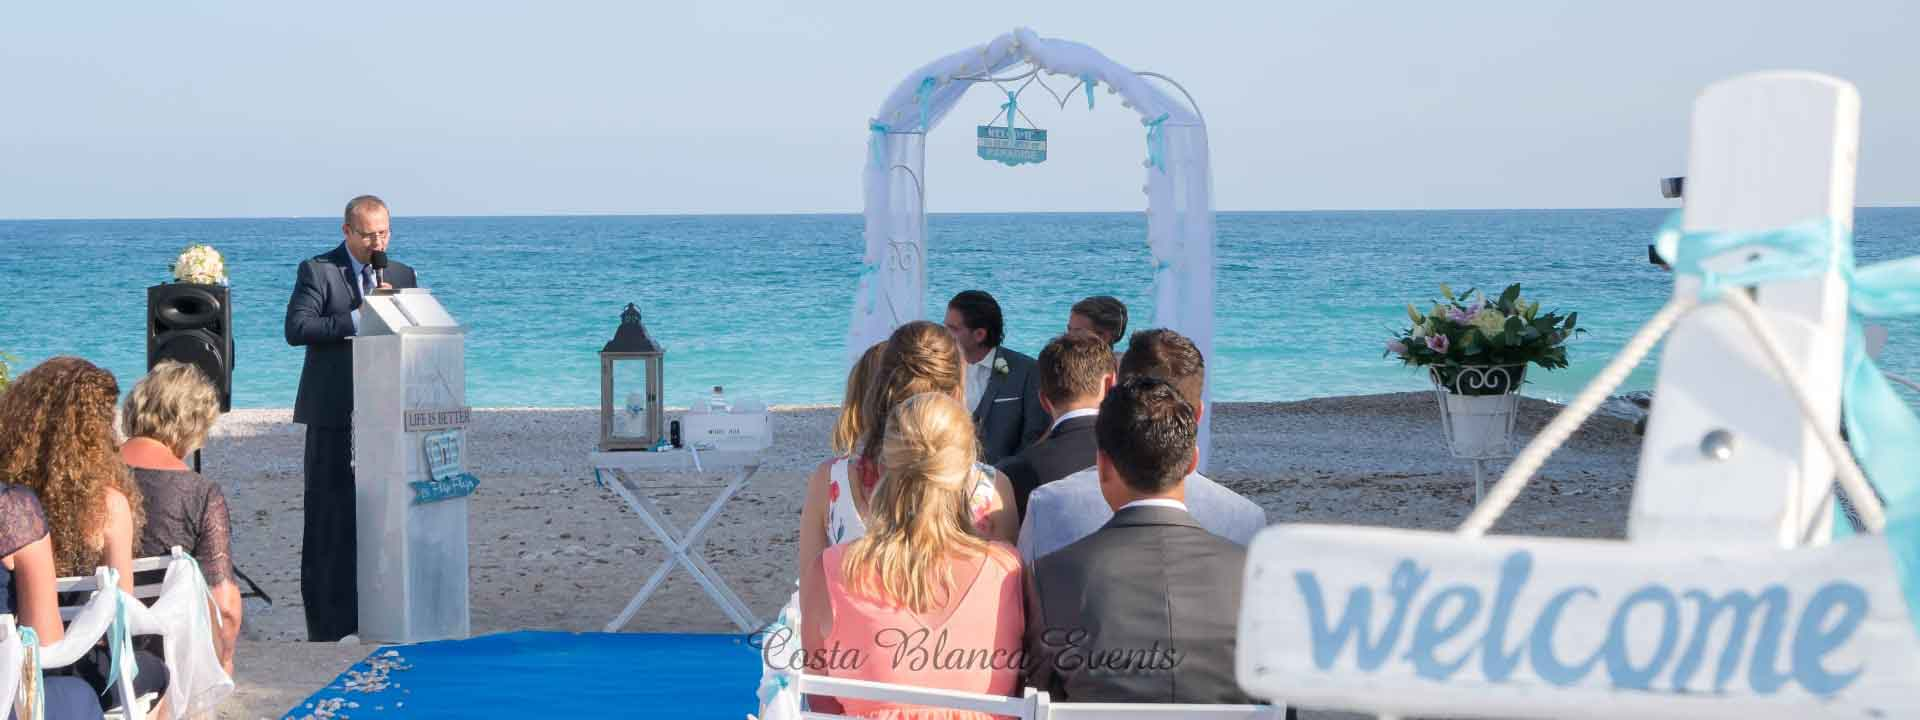 Spain wedding packages all inclusive on the beach ceremony